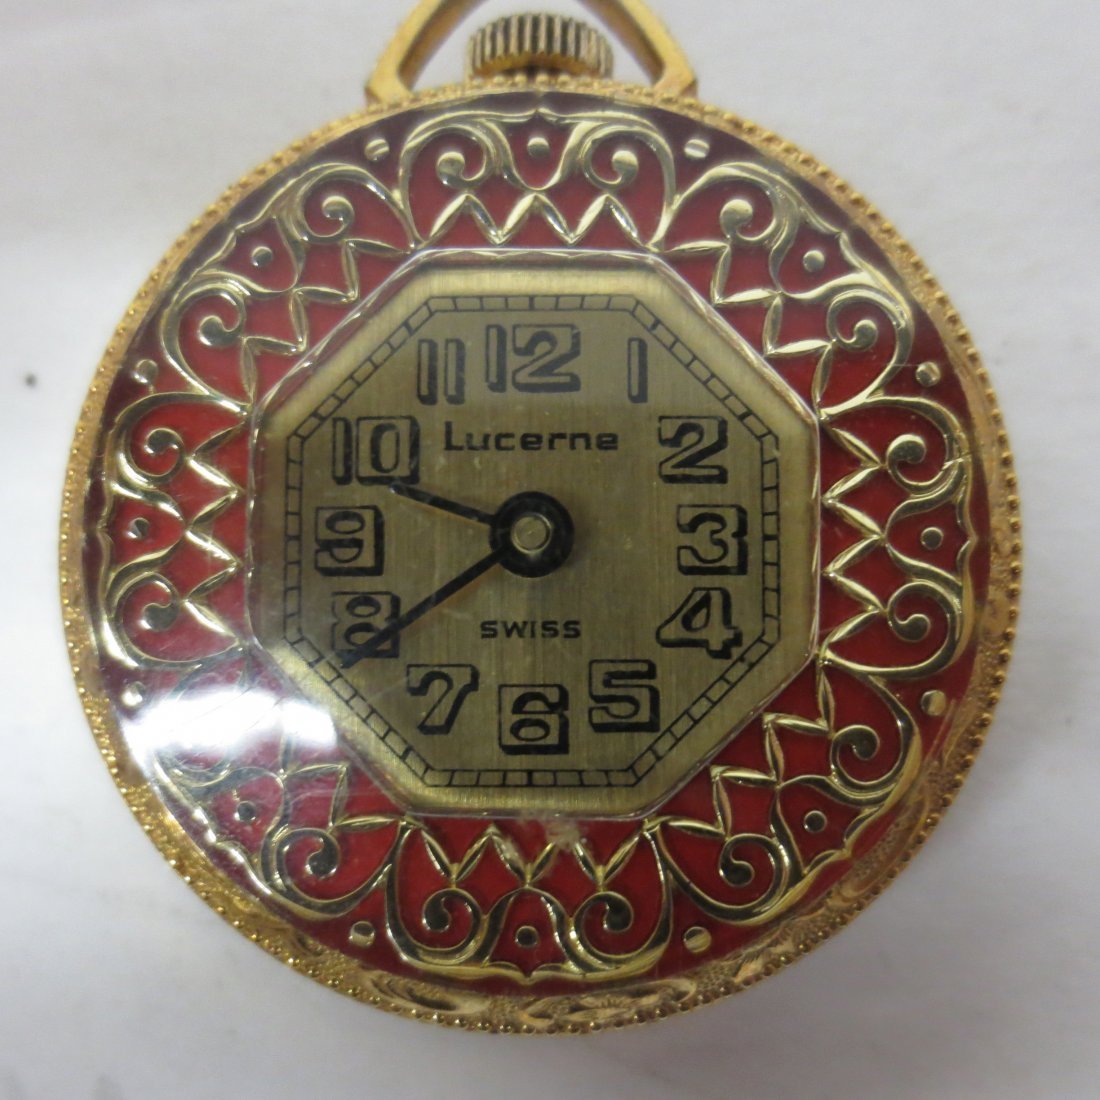 Pocket Watches, Lucerne, Genovit De Luxe, Navarre, - 4